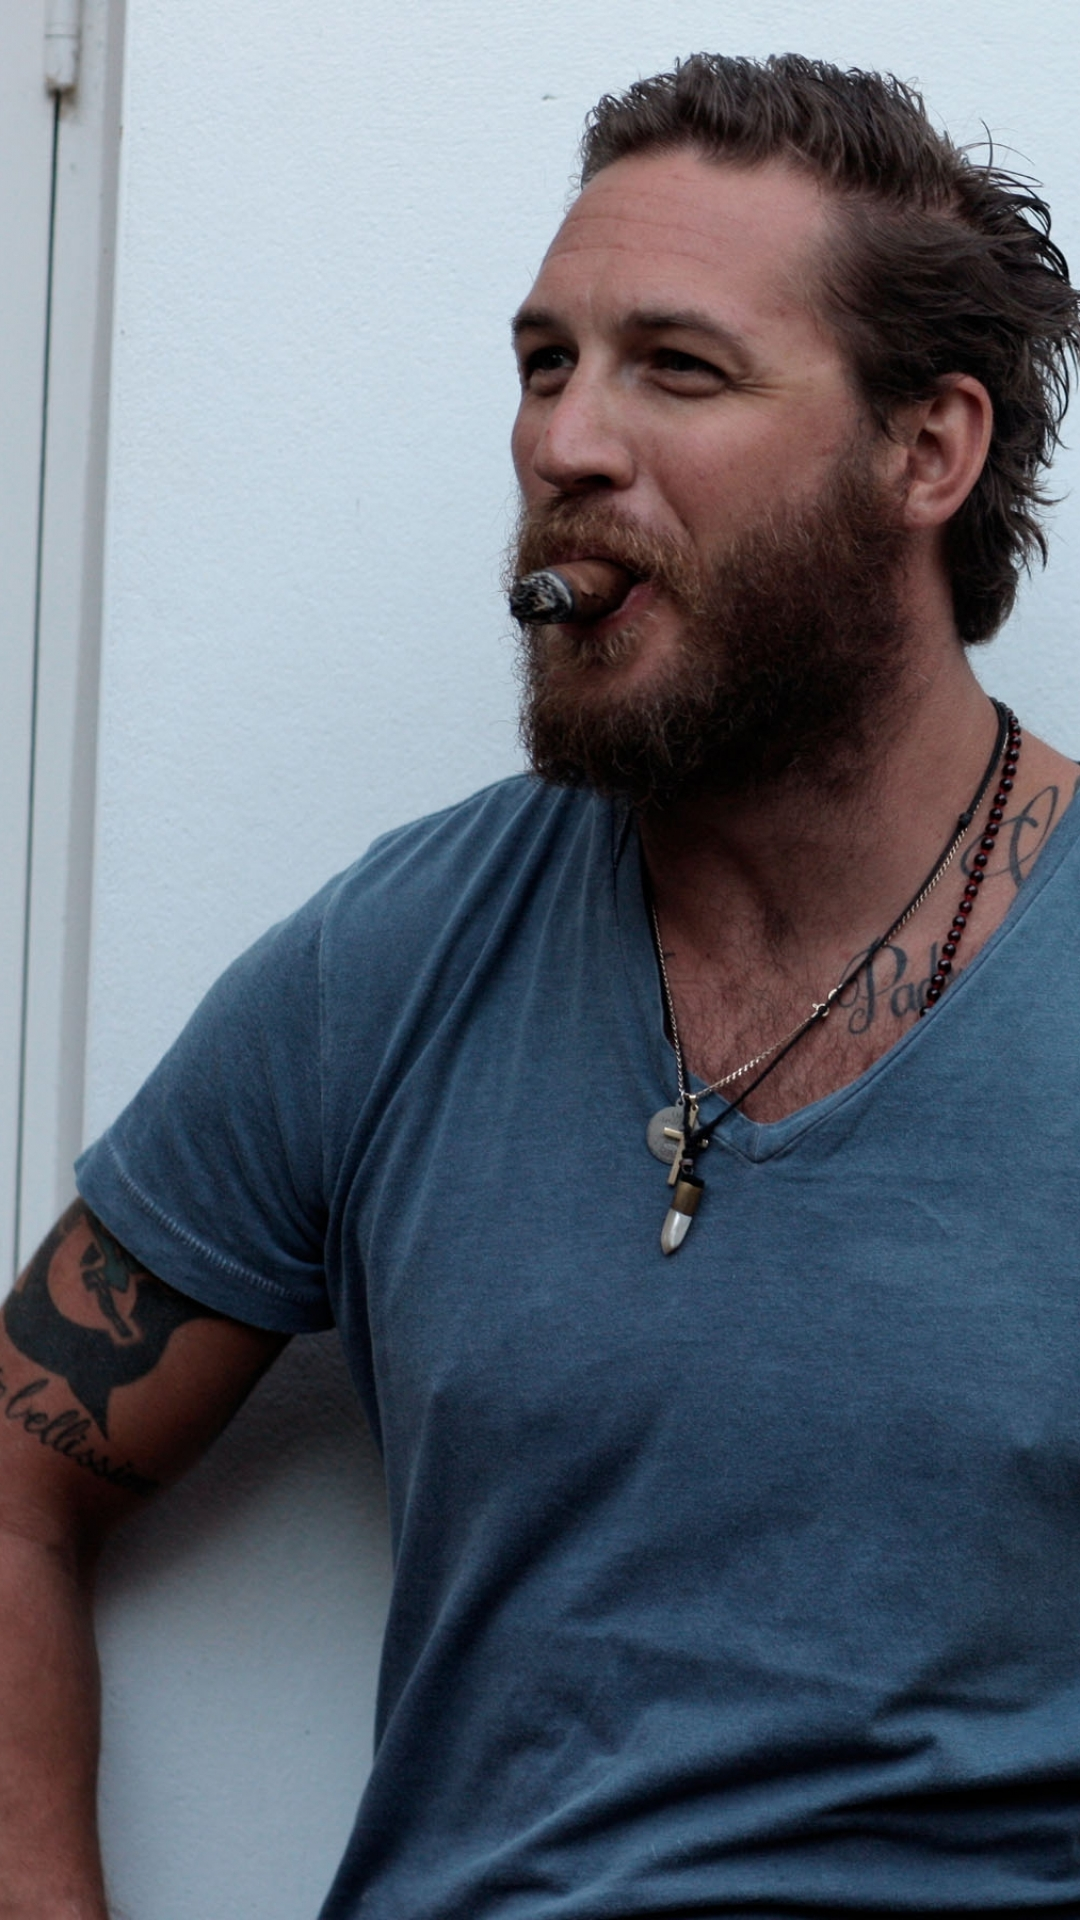 CelebrityTom Hardy 1080x1920 Wallpaper ID 582946   Mobile Abyss 1080x1920